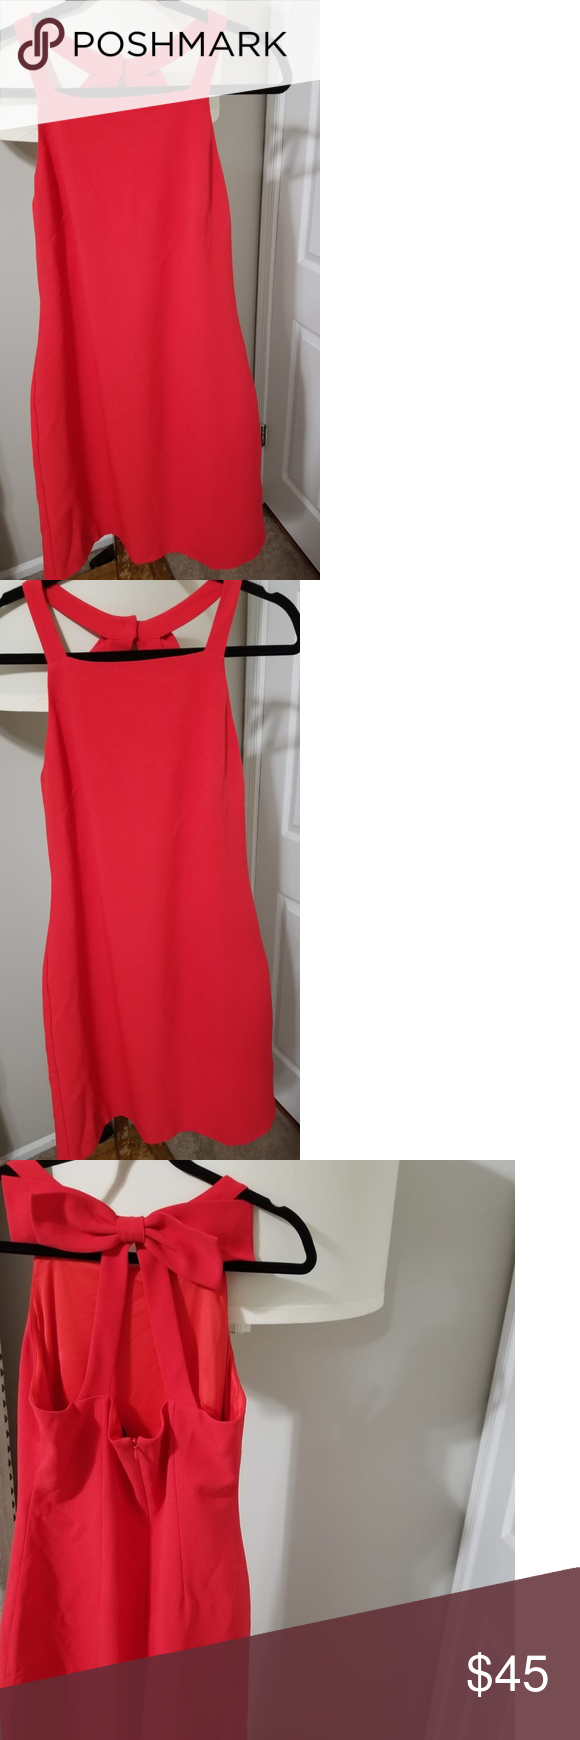 Vince Camuto Red Dress Price Reduced Today Only Red Dress Elegant Red Dress Clothes Design [ 1740 x 580 Pixel ]